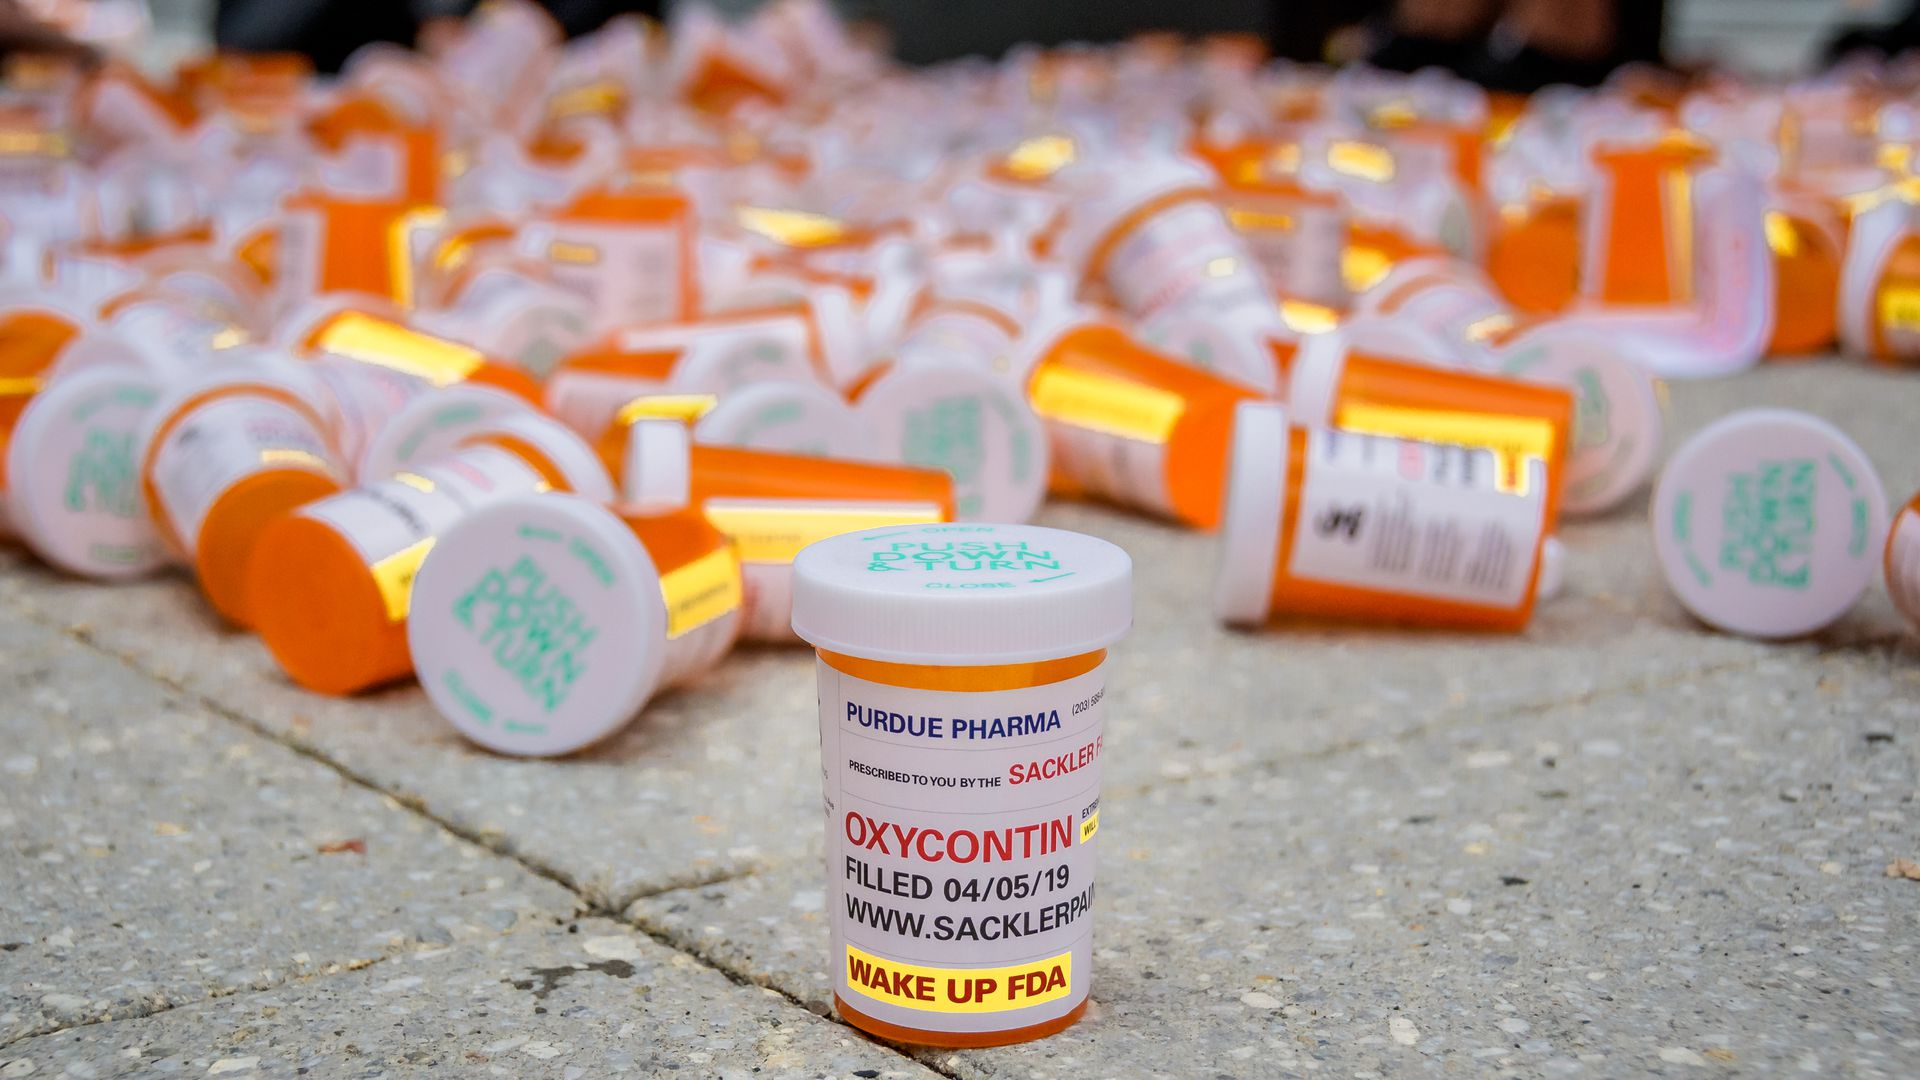 In this image, a pile of prescription bottles are piled on the concrete.